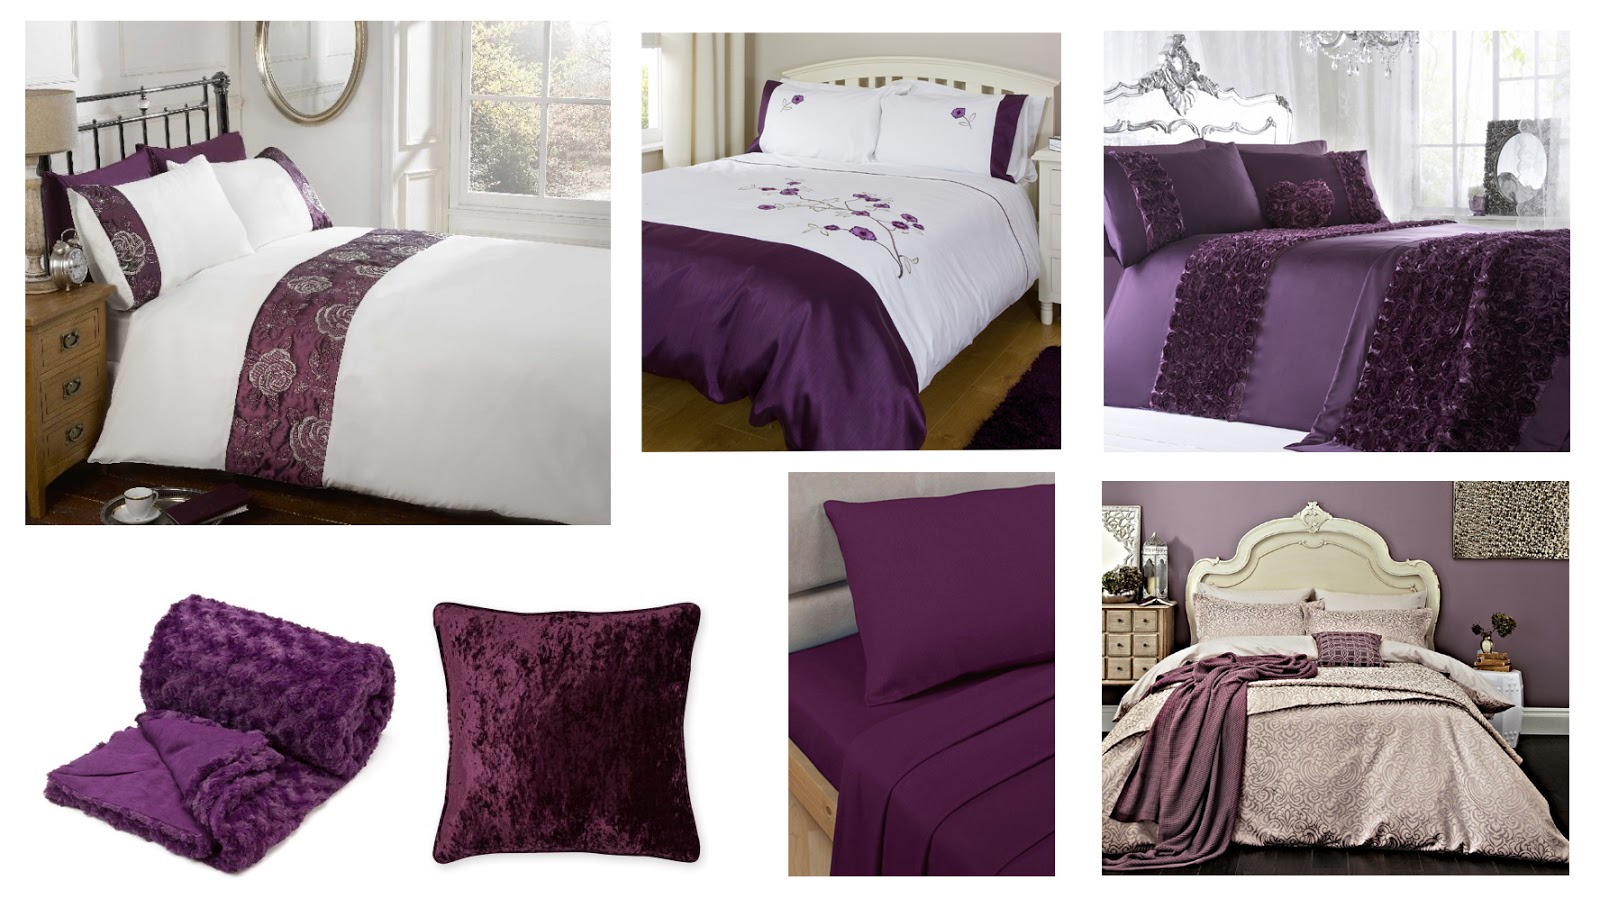 Bedding For Changing Your Bedroom Atomsphere: Plum Moodboard | Katie Kirk Loves